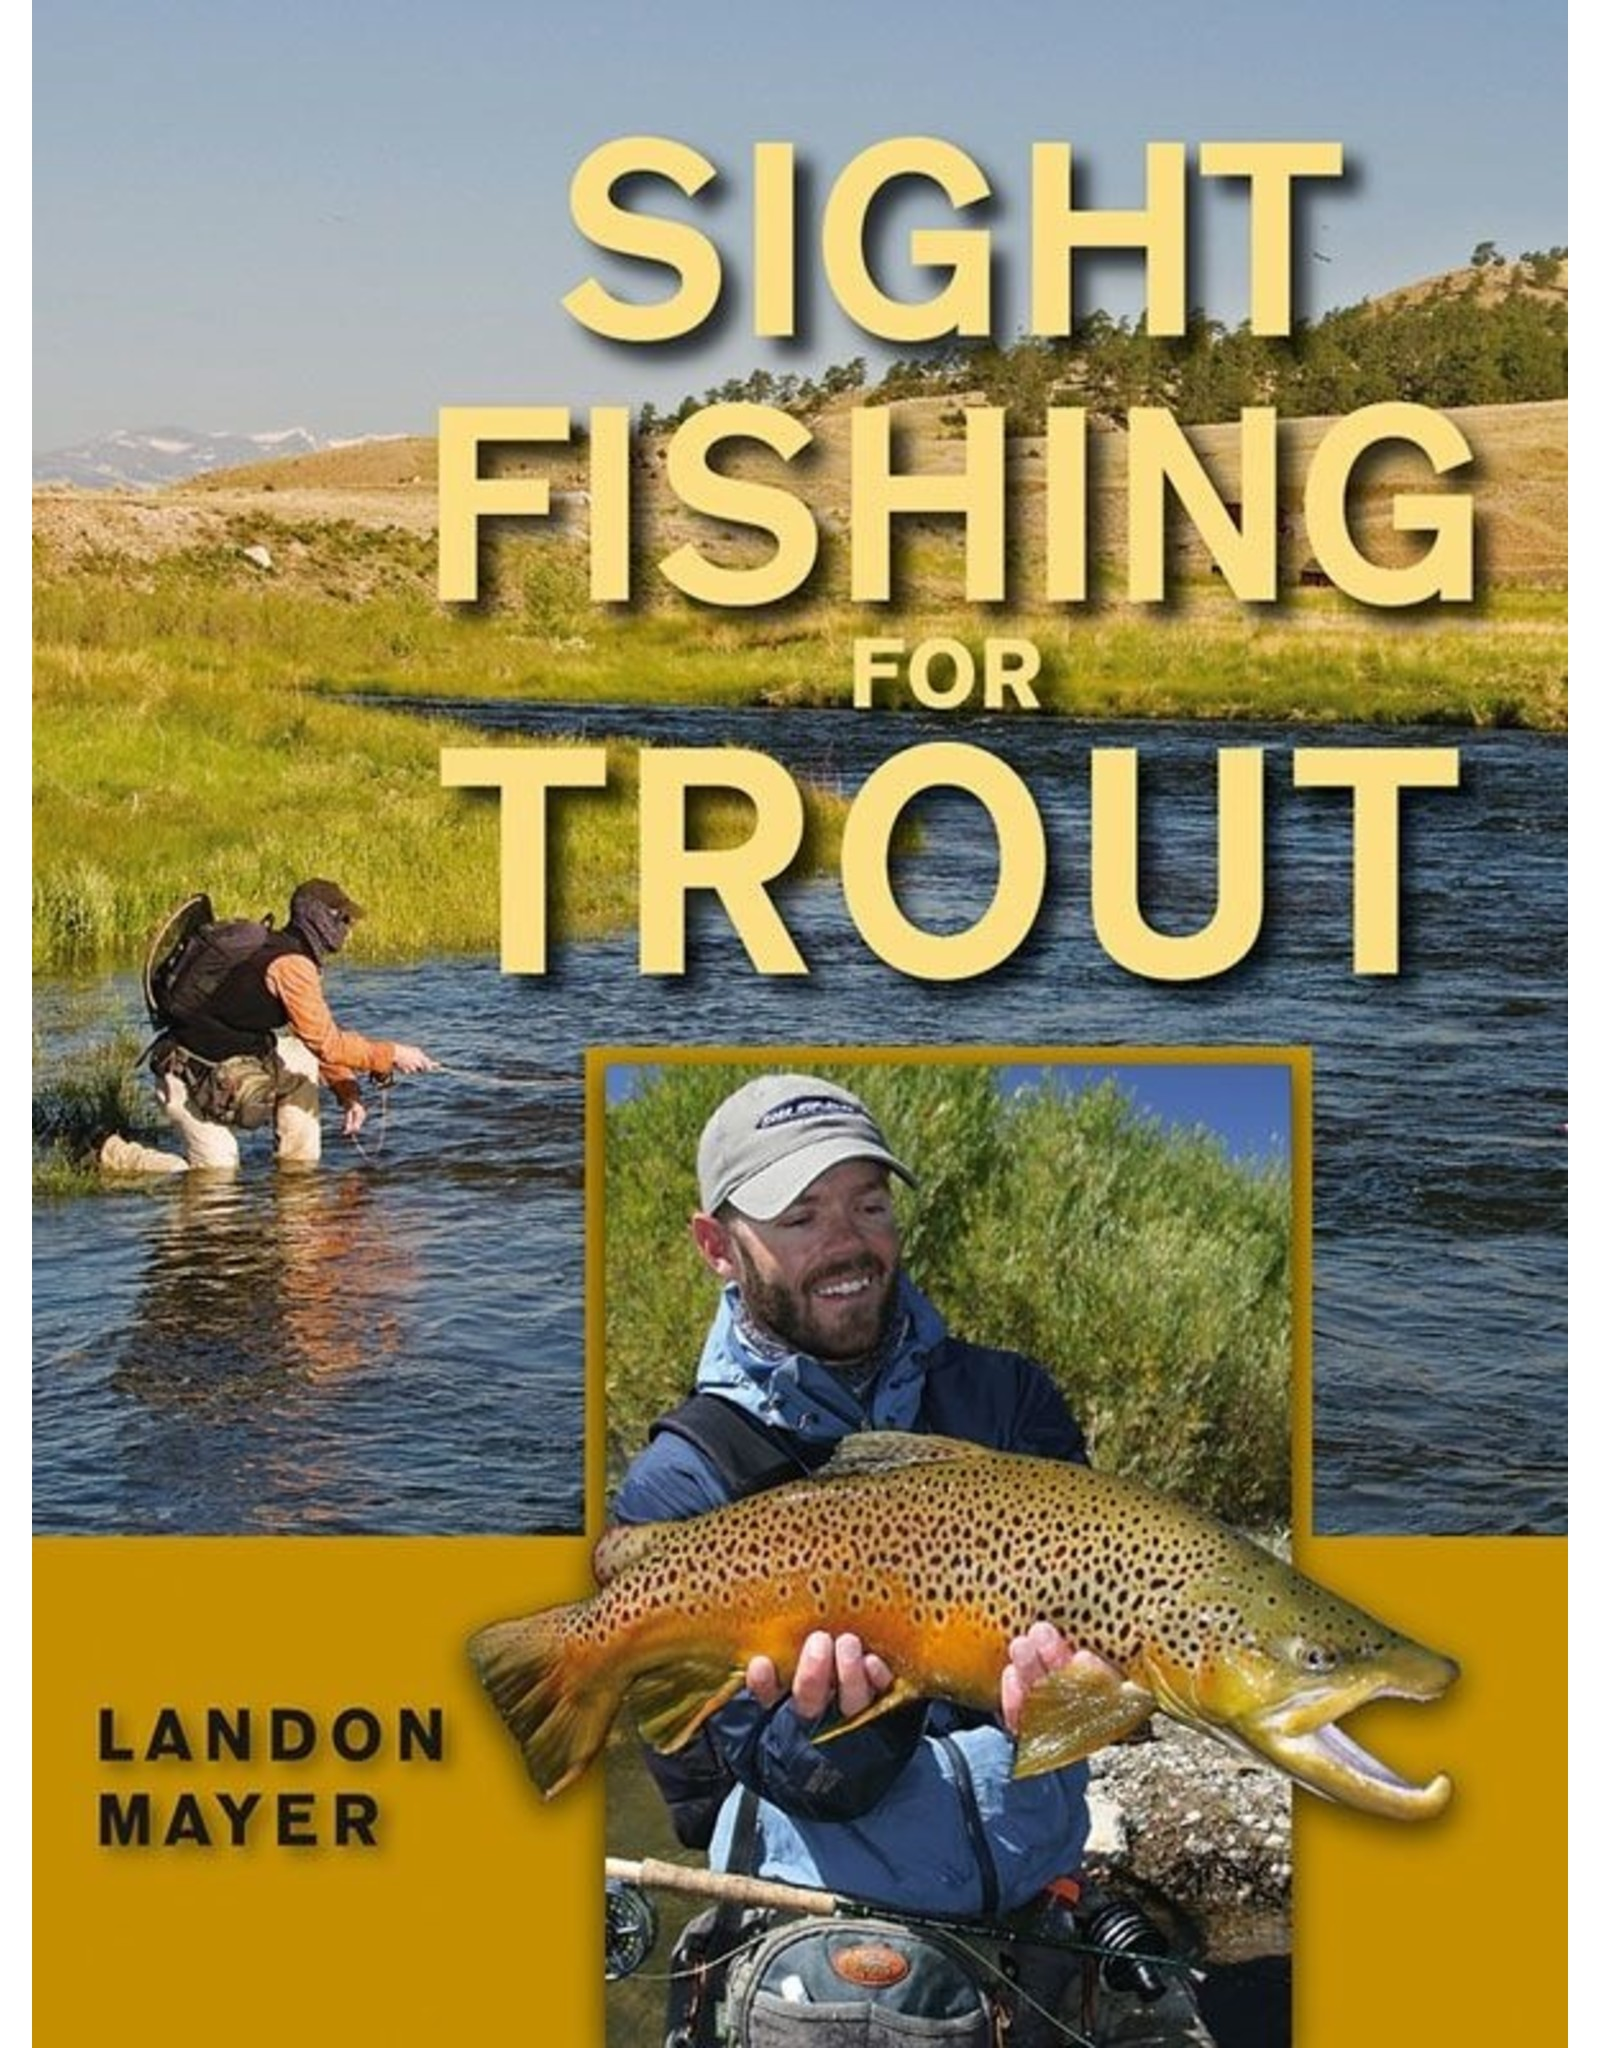 Books Sight Fishing for Trout by Landon Mayer